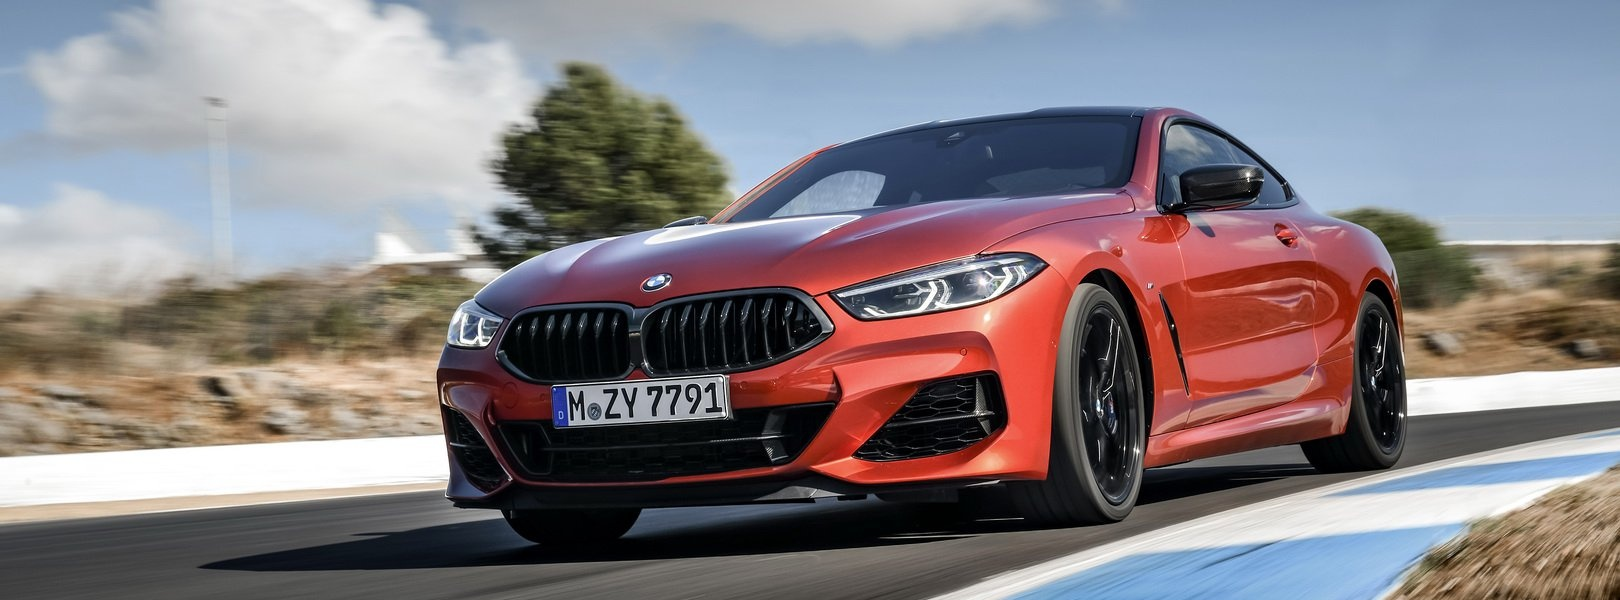 c2be22c3-2019-bmw-8-series-coupe-45.jpg